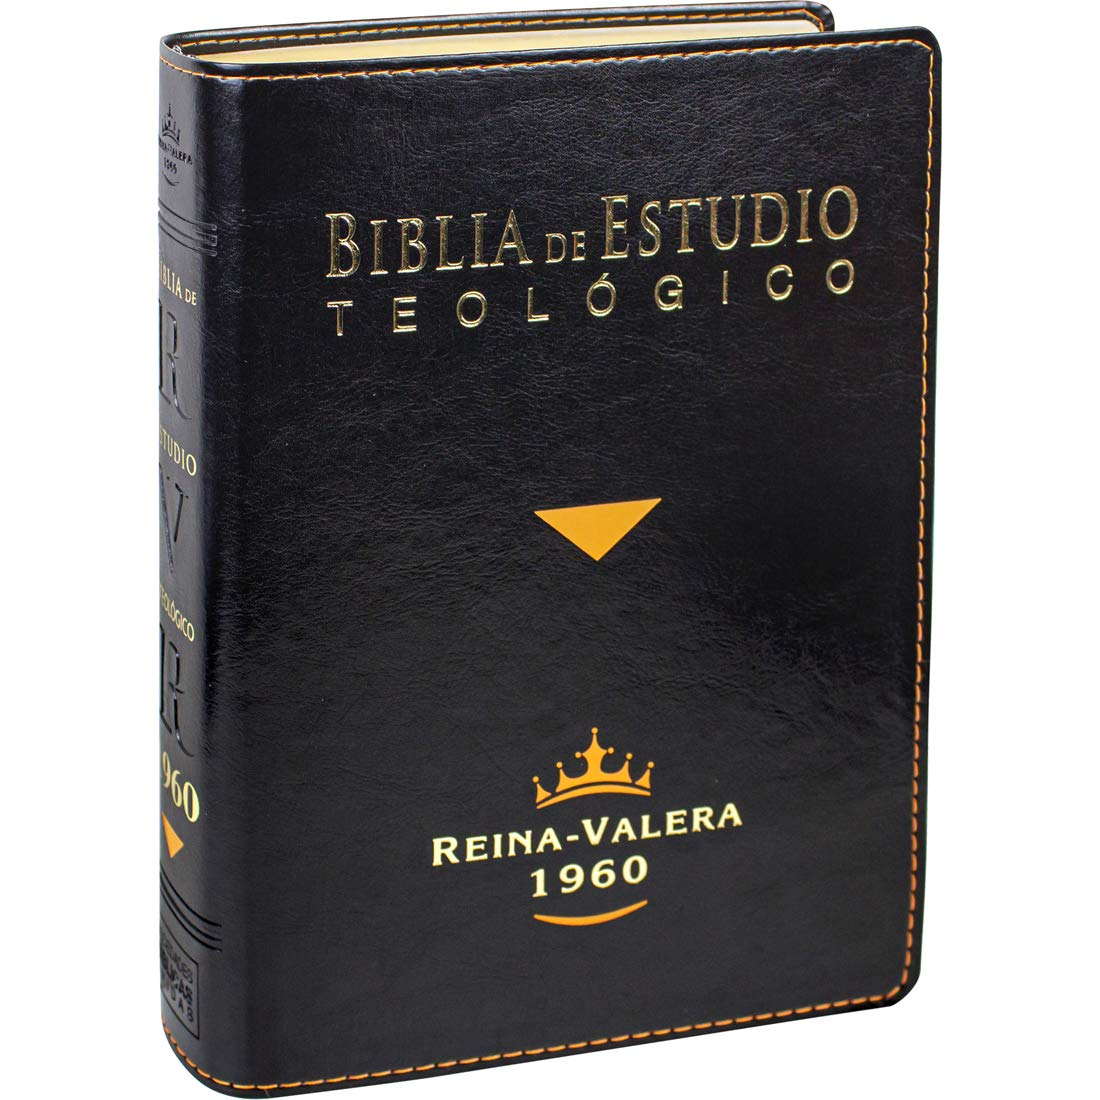 Biblia De Estudio Teológico Reina Valera 1960 Piel Fabricada Negro Con Index Spanish Edition 7899938410950 Reina Valera 1960 United Bible Societies Books